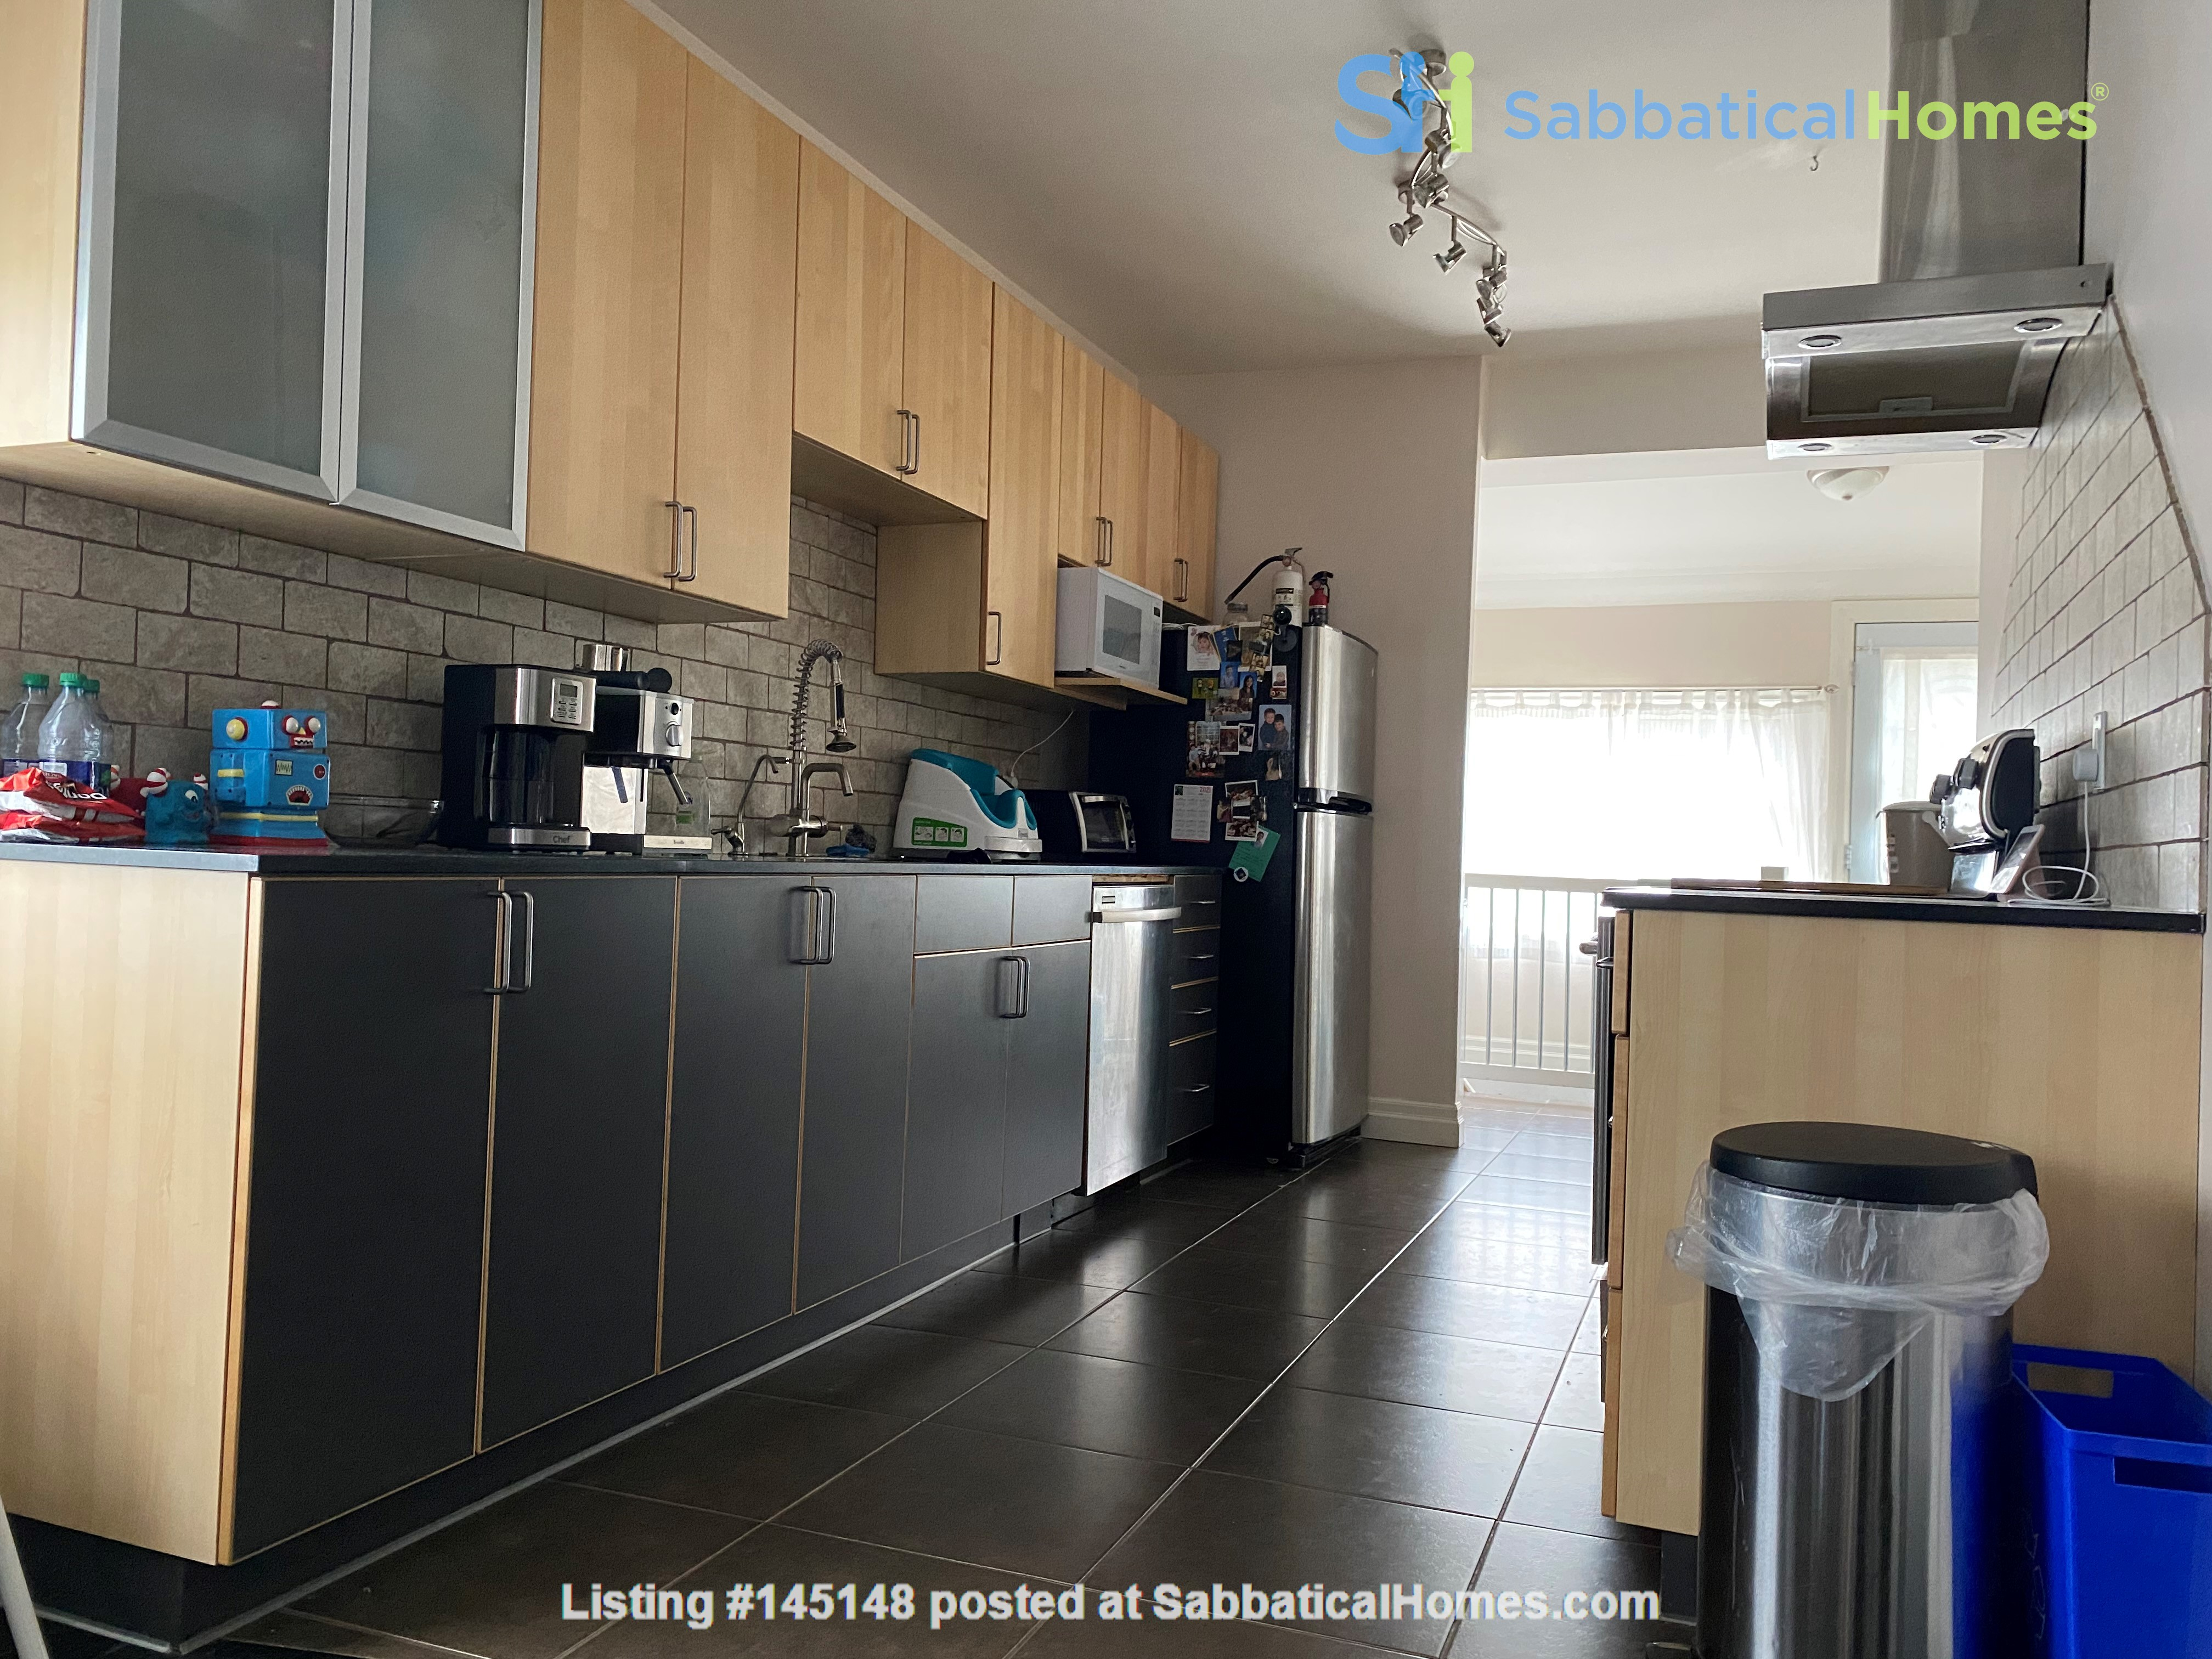 2-BR Renovated Bungalow: Perfect for a family with young kids! Home Rental in Toronto, Ontario, Canada 3